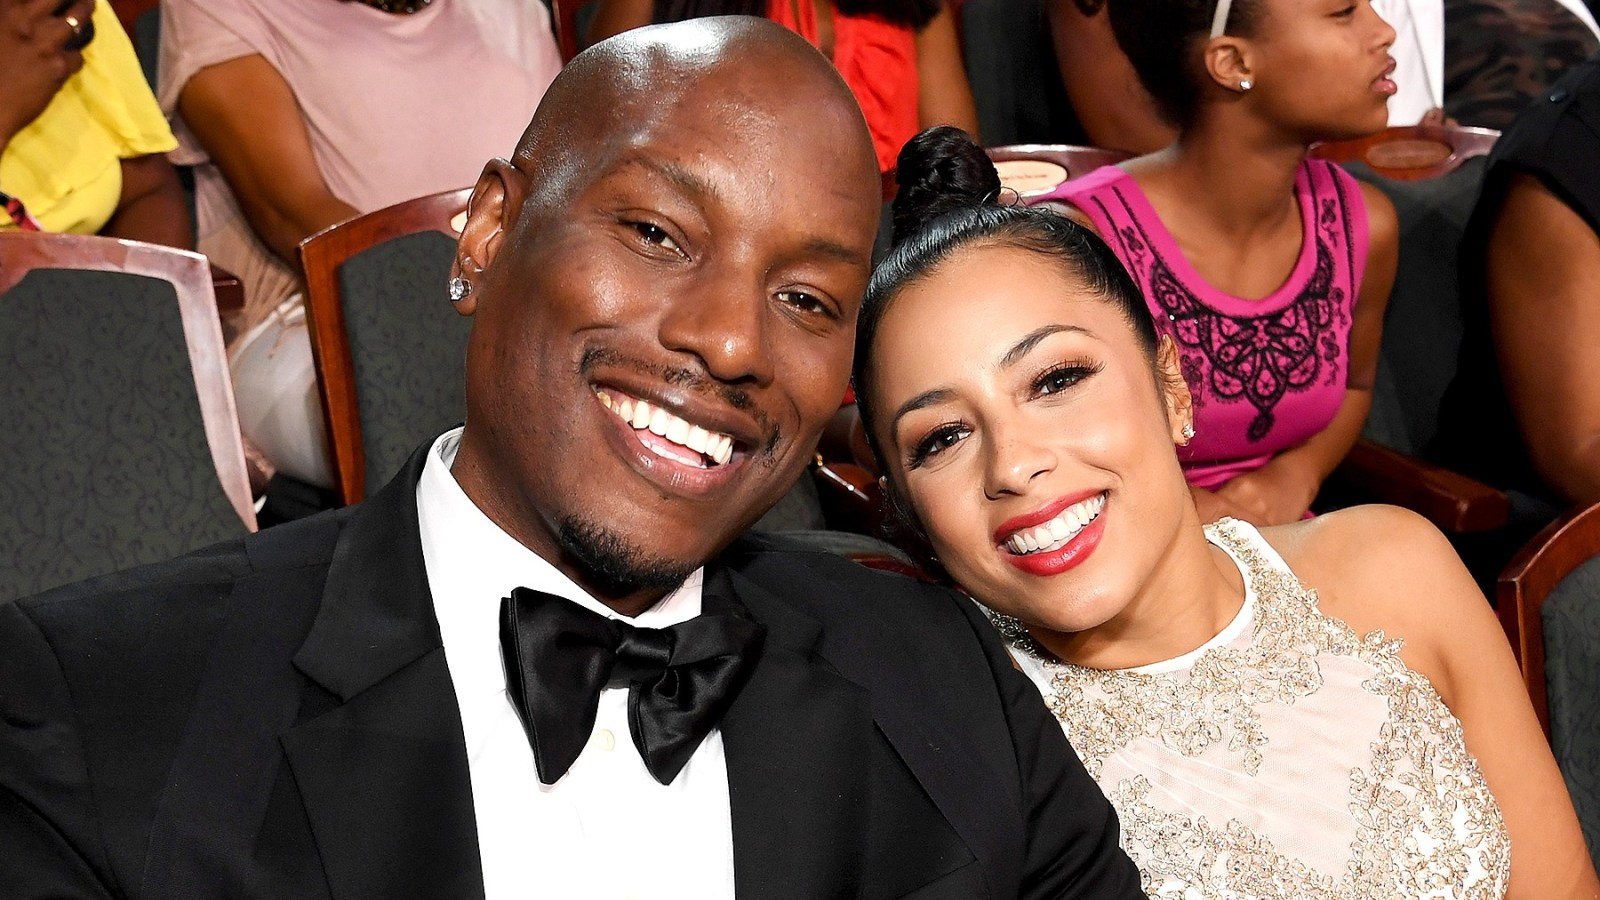 tyreses-wife-samantha-gibson-has-the-best-surprise-for-him-see-the-video